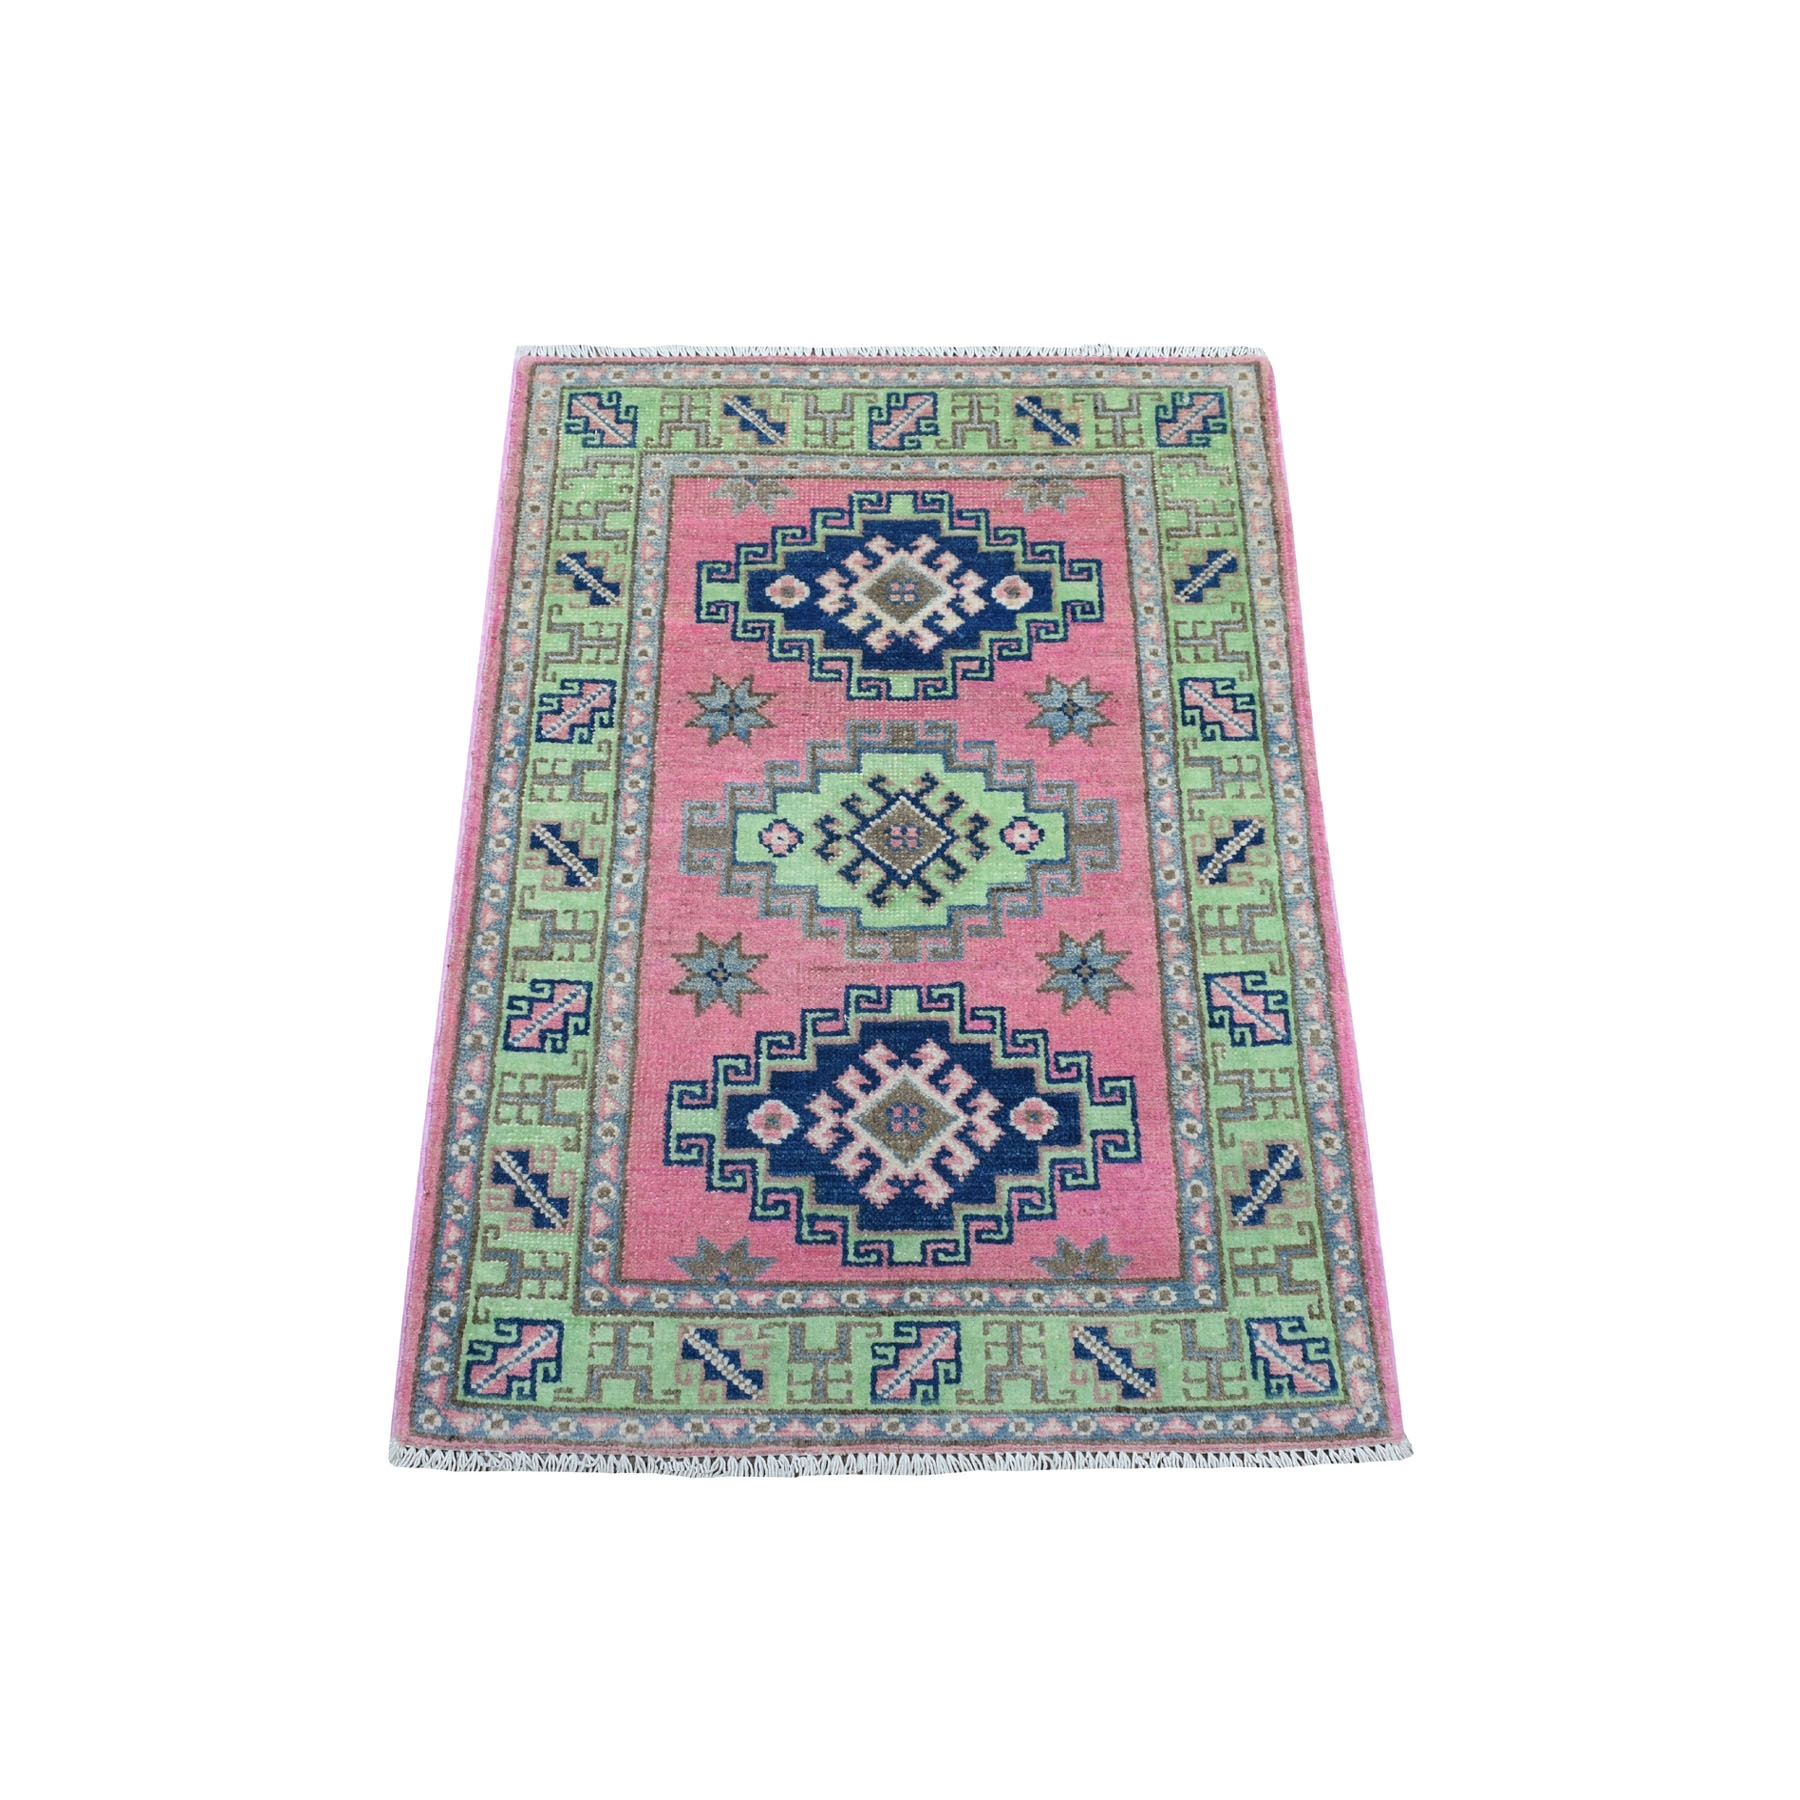 "2'x2'10"" Colorful Pink Fusion Kazak Pure Wool Geometric Design Hand Woven Oriental Rug"